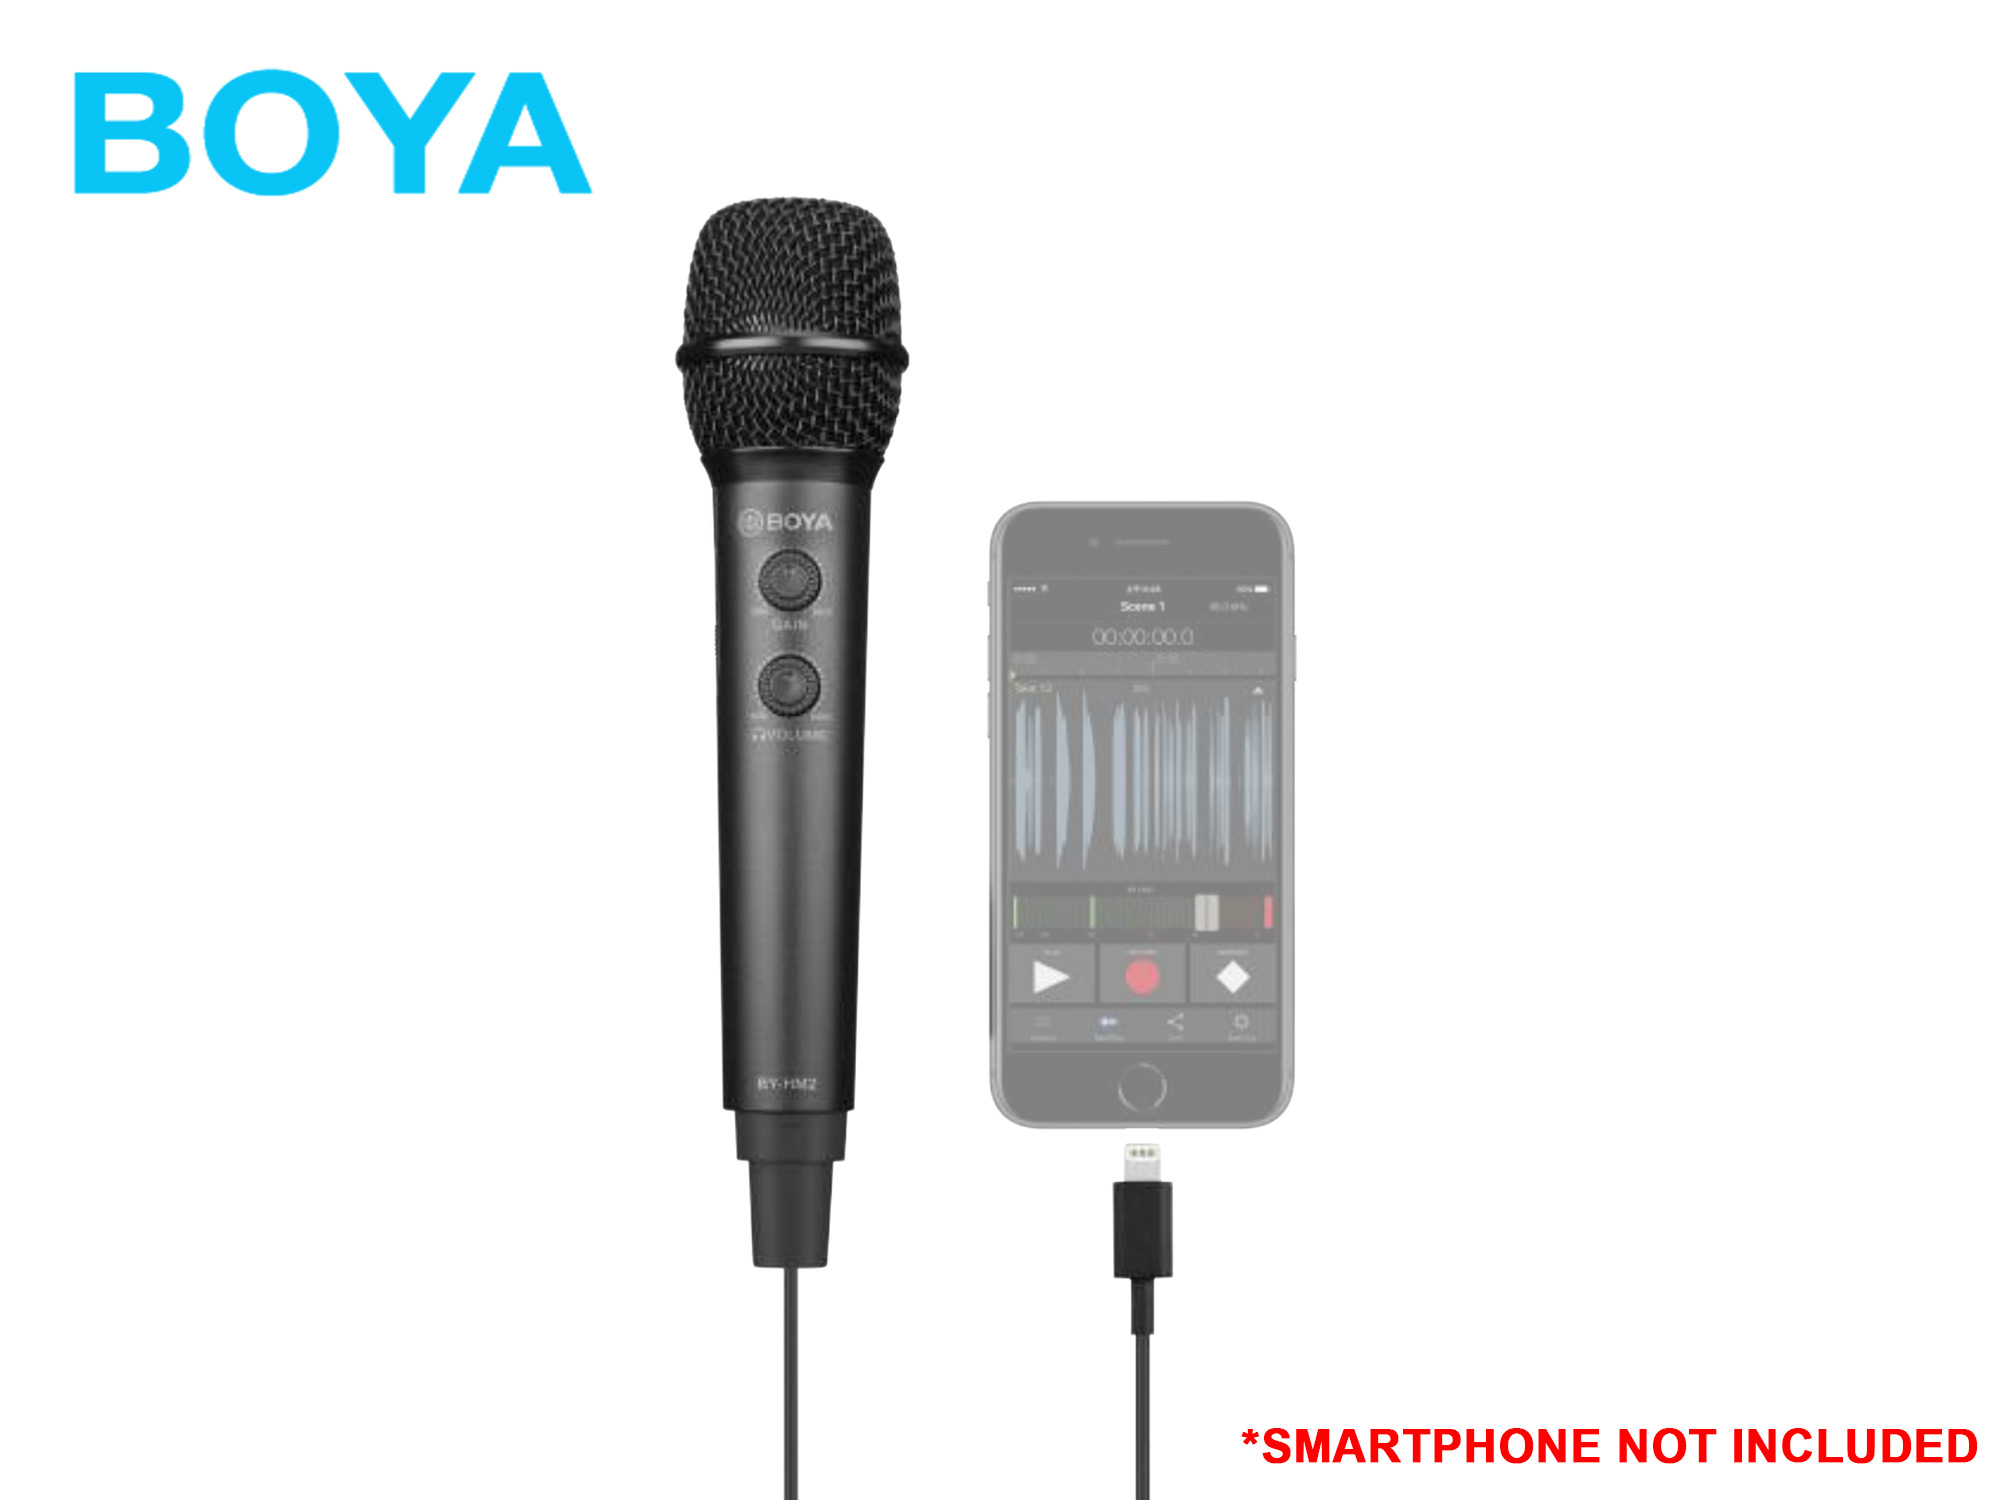 Boya BY-HM2 Digital Handheld Microphone for iOS/Android/Mac/Windows